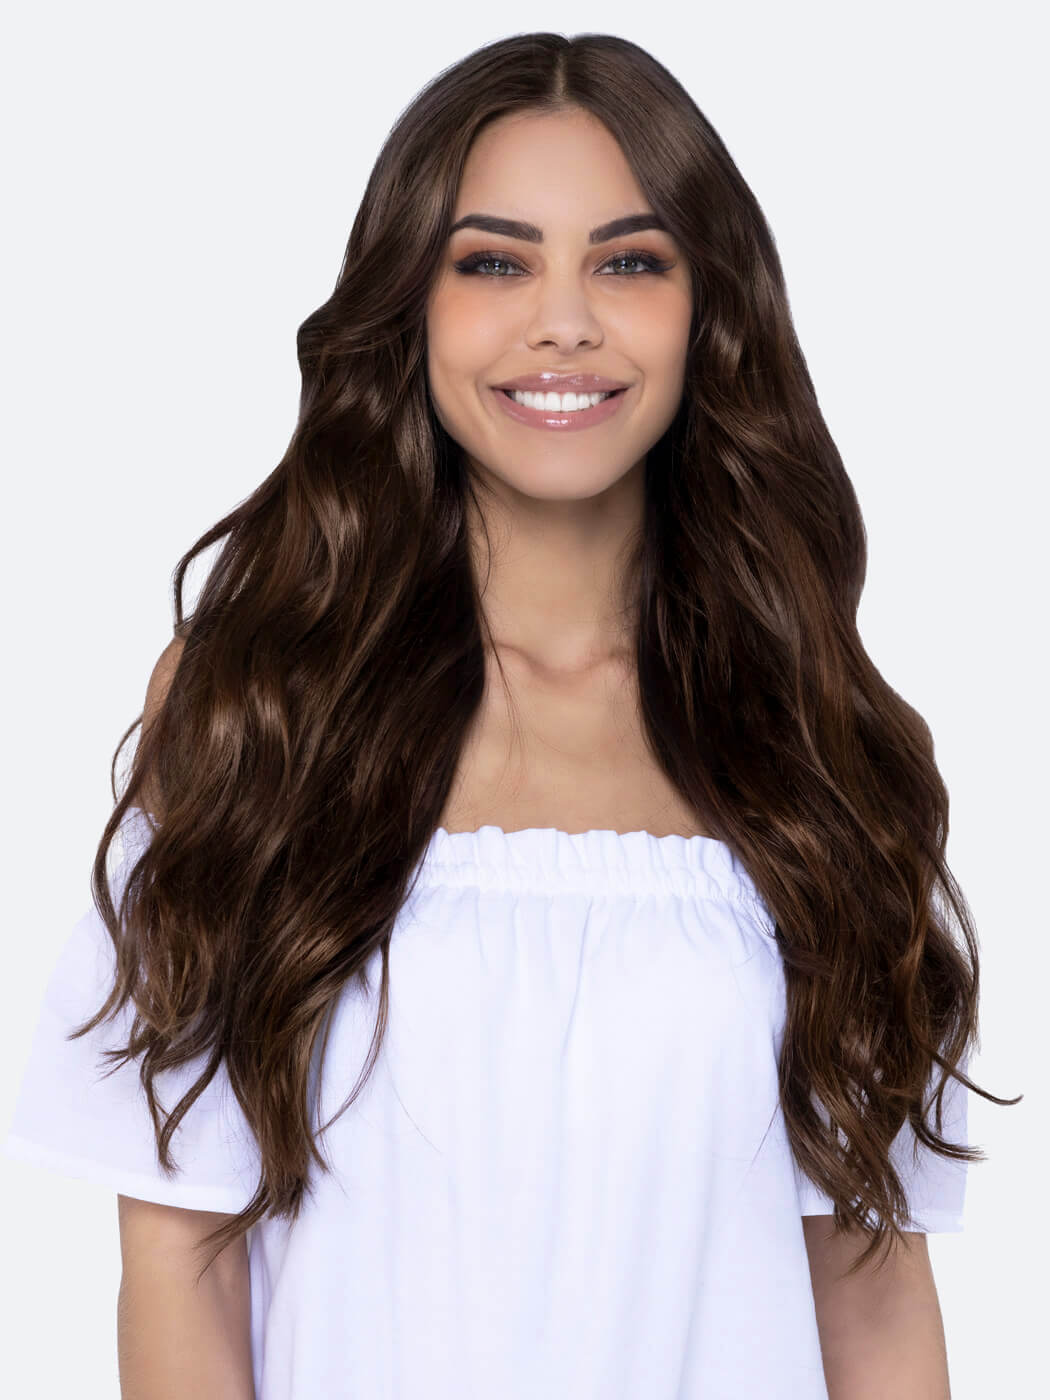 Natural Hair Extensions | Remy Hair Extensions | Clip In Hair | Natural Hair Clip Ins | Best Hair Extensions | 20 Inch Hair Extensions | Remy Hair